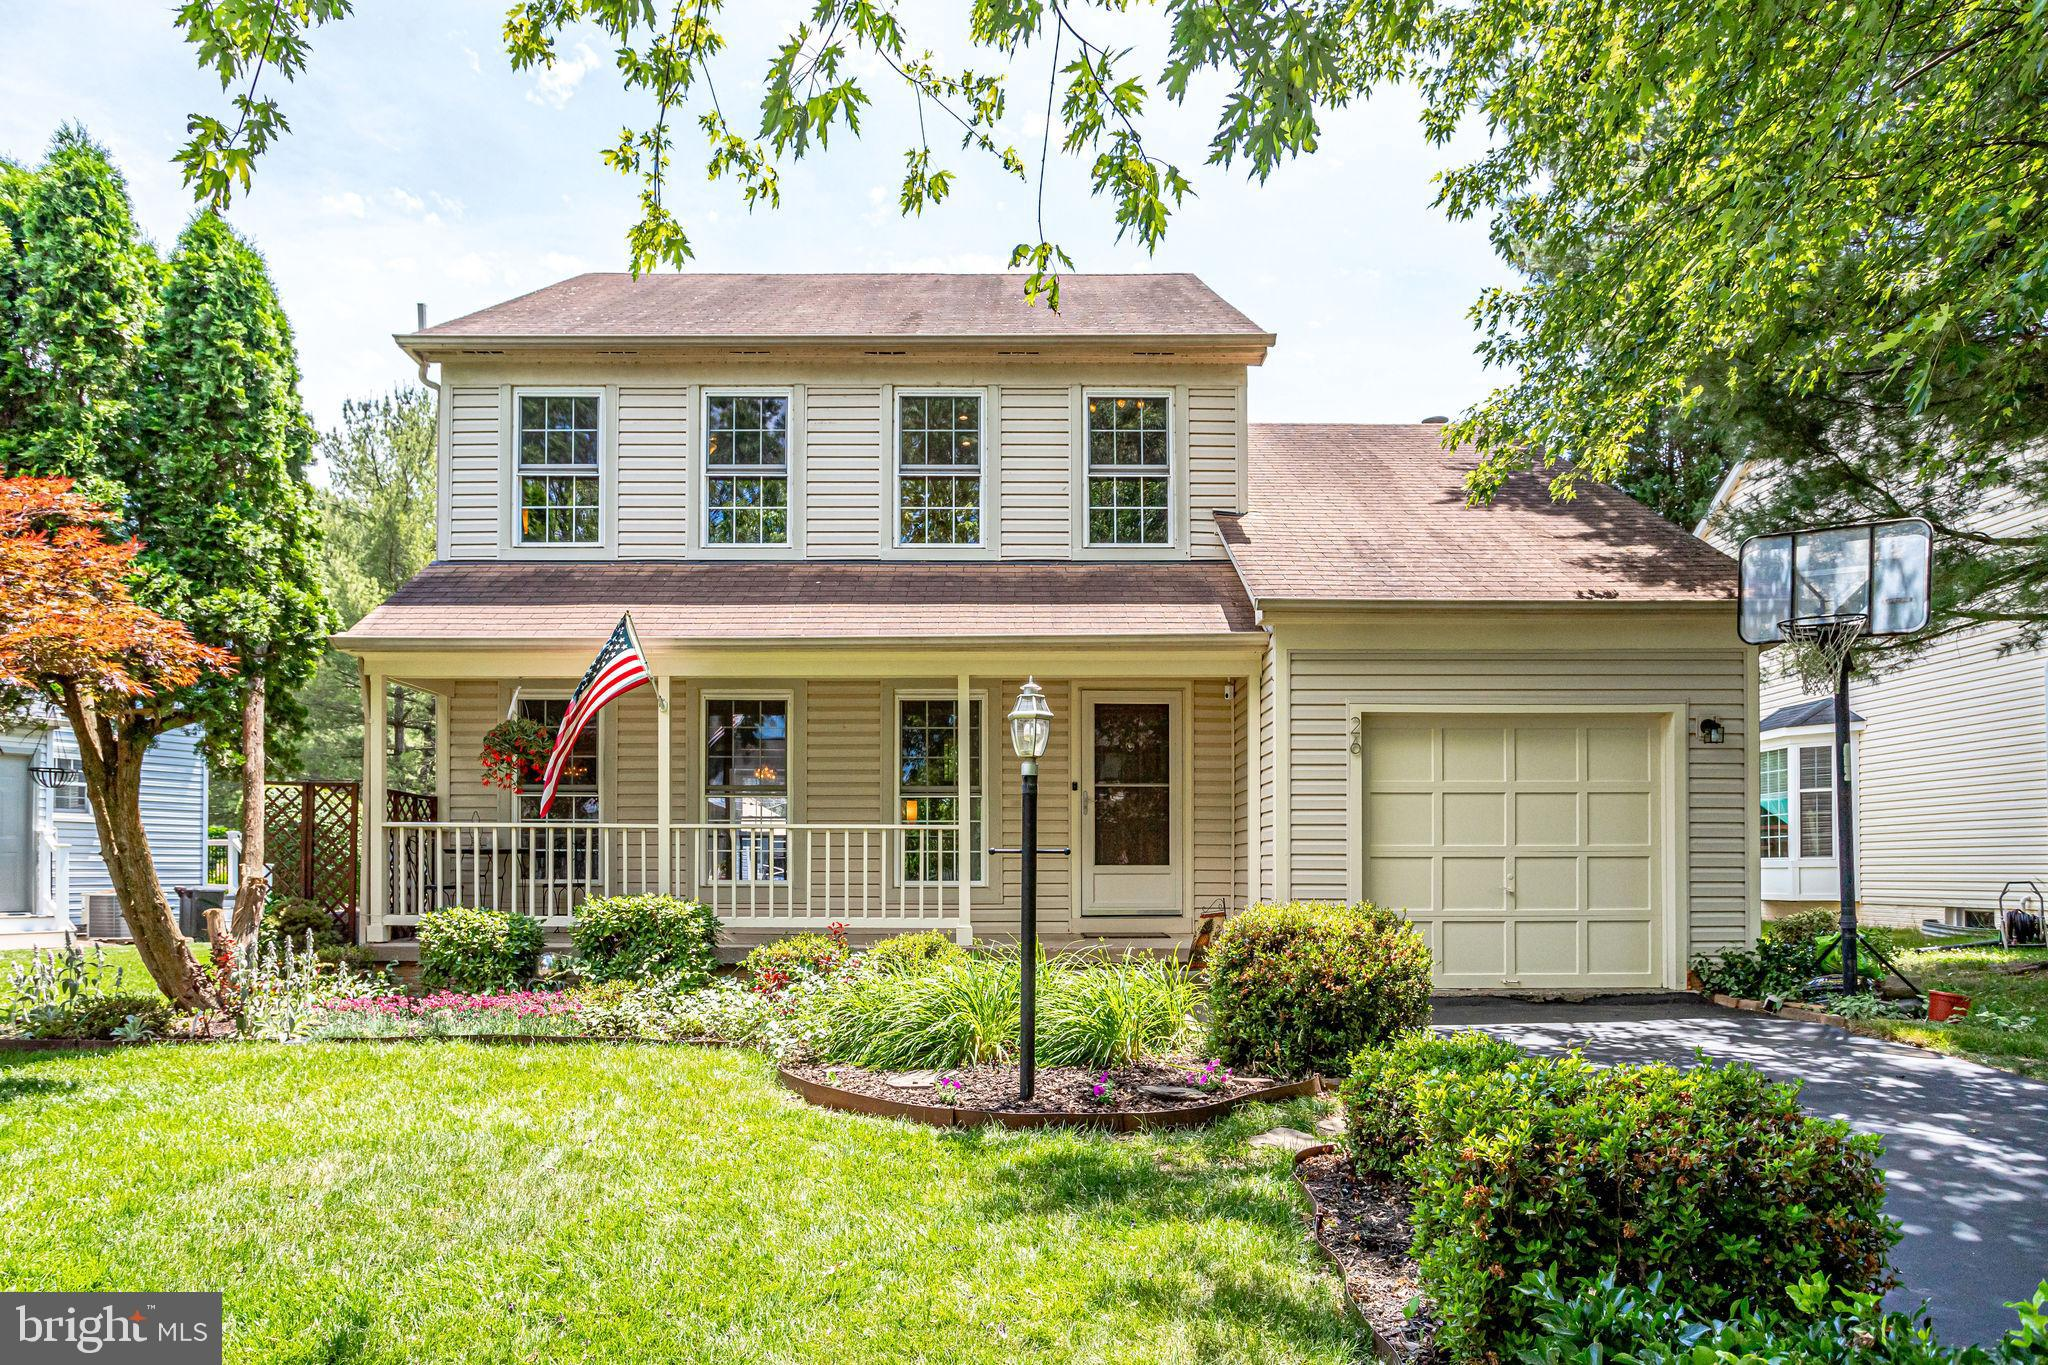 JUST LISTED! Incredible Single Family Home in the sought-after Countryside Community. This is the on